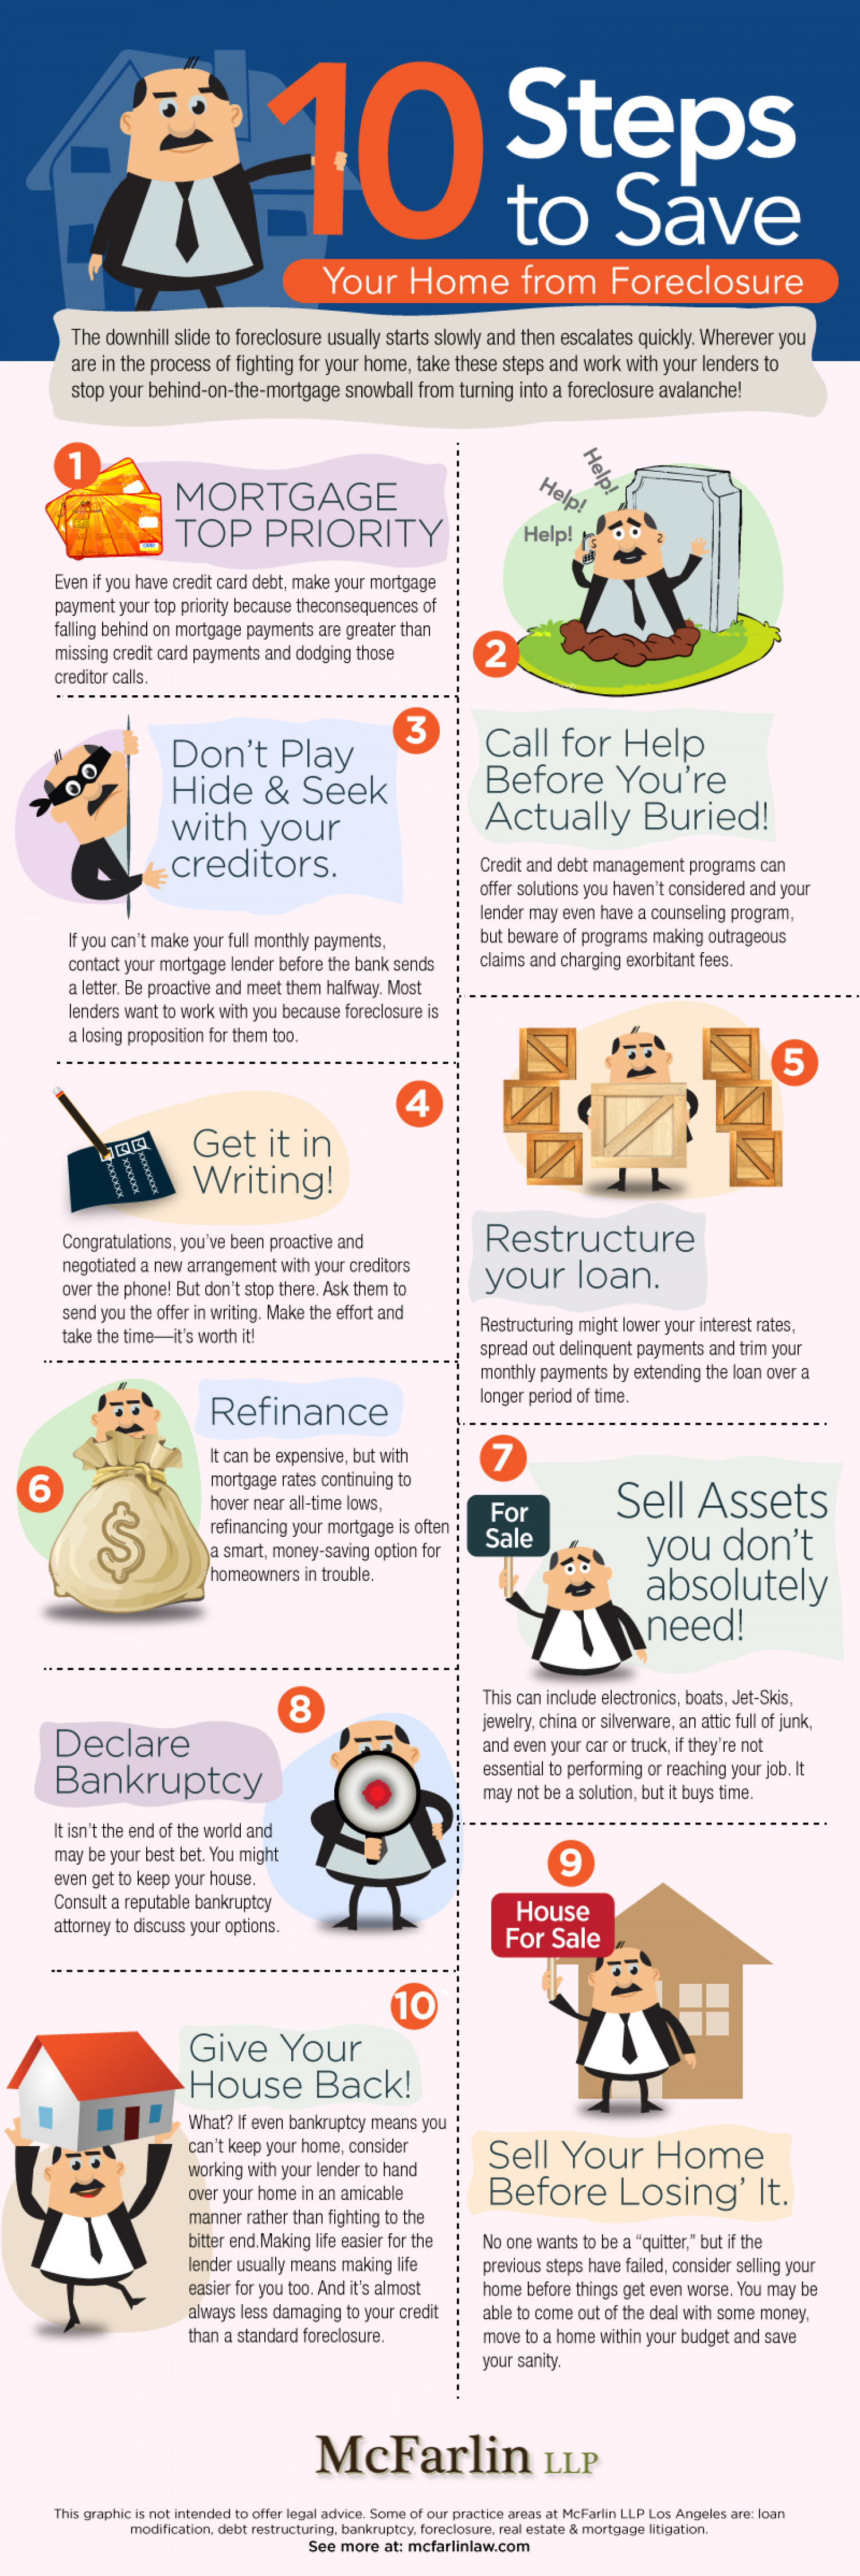 10 Steps to Save your Home Infographic